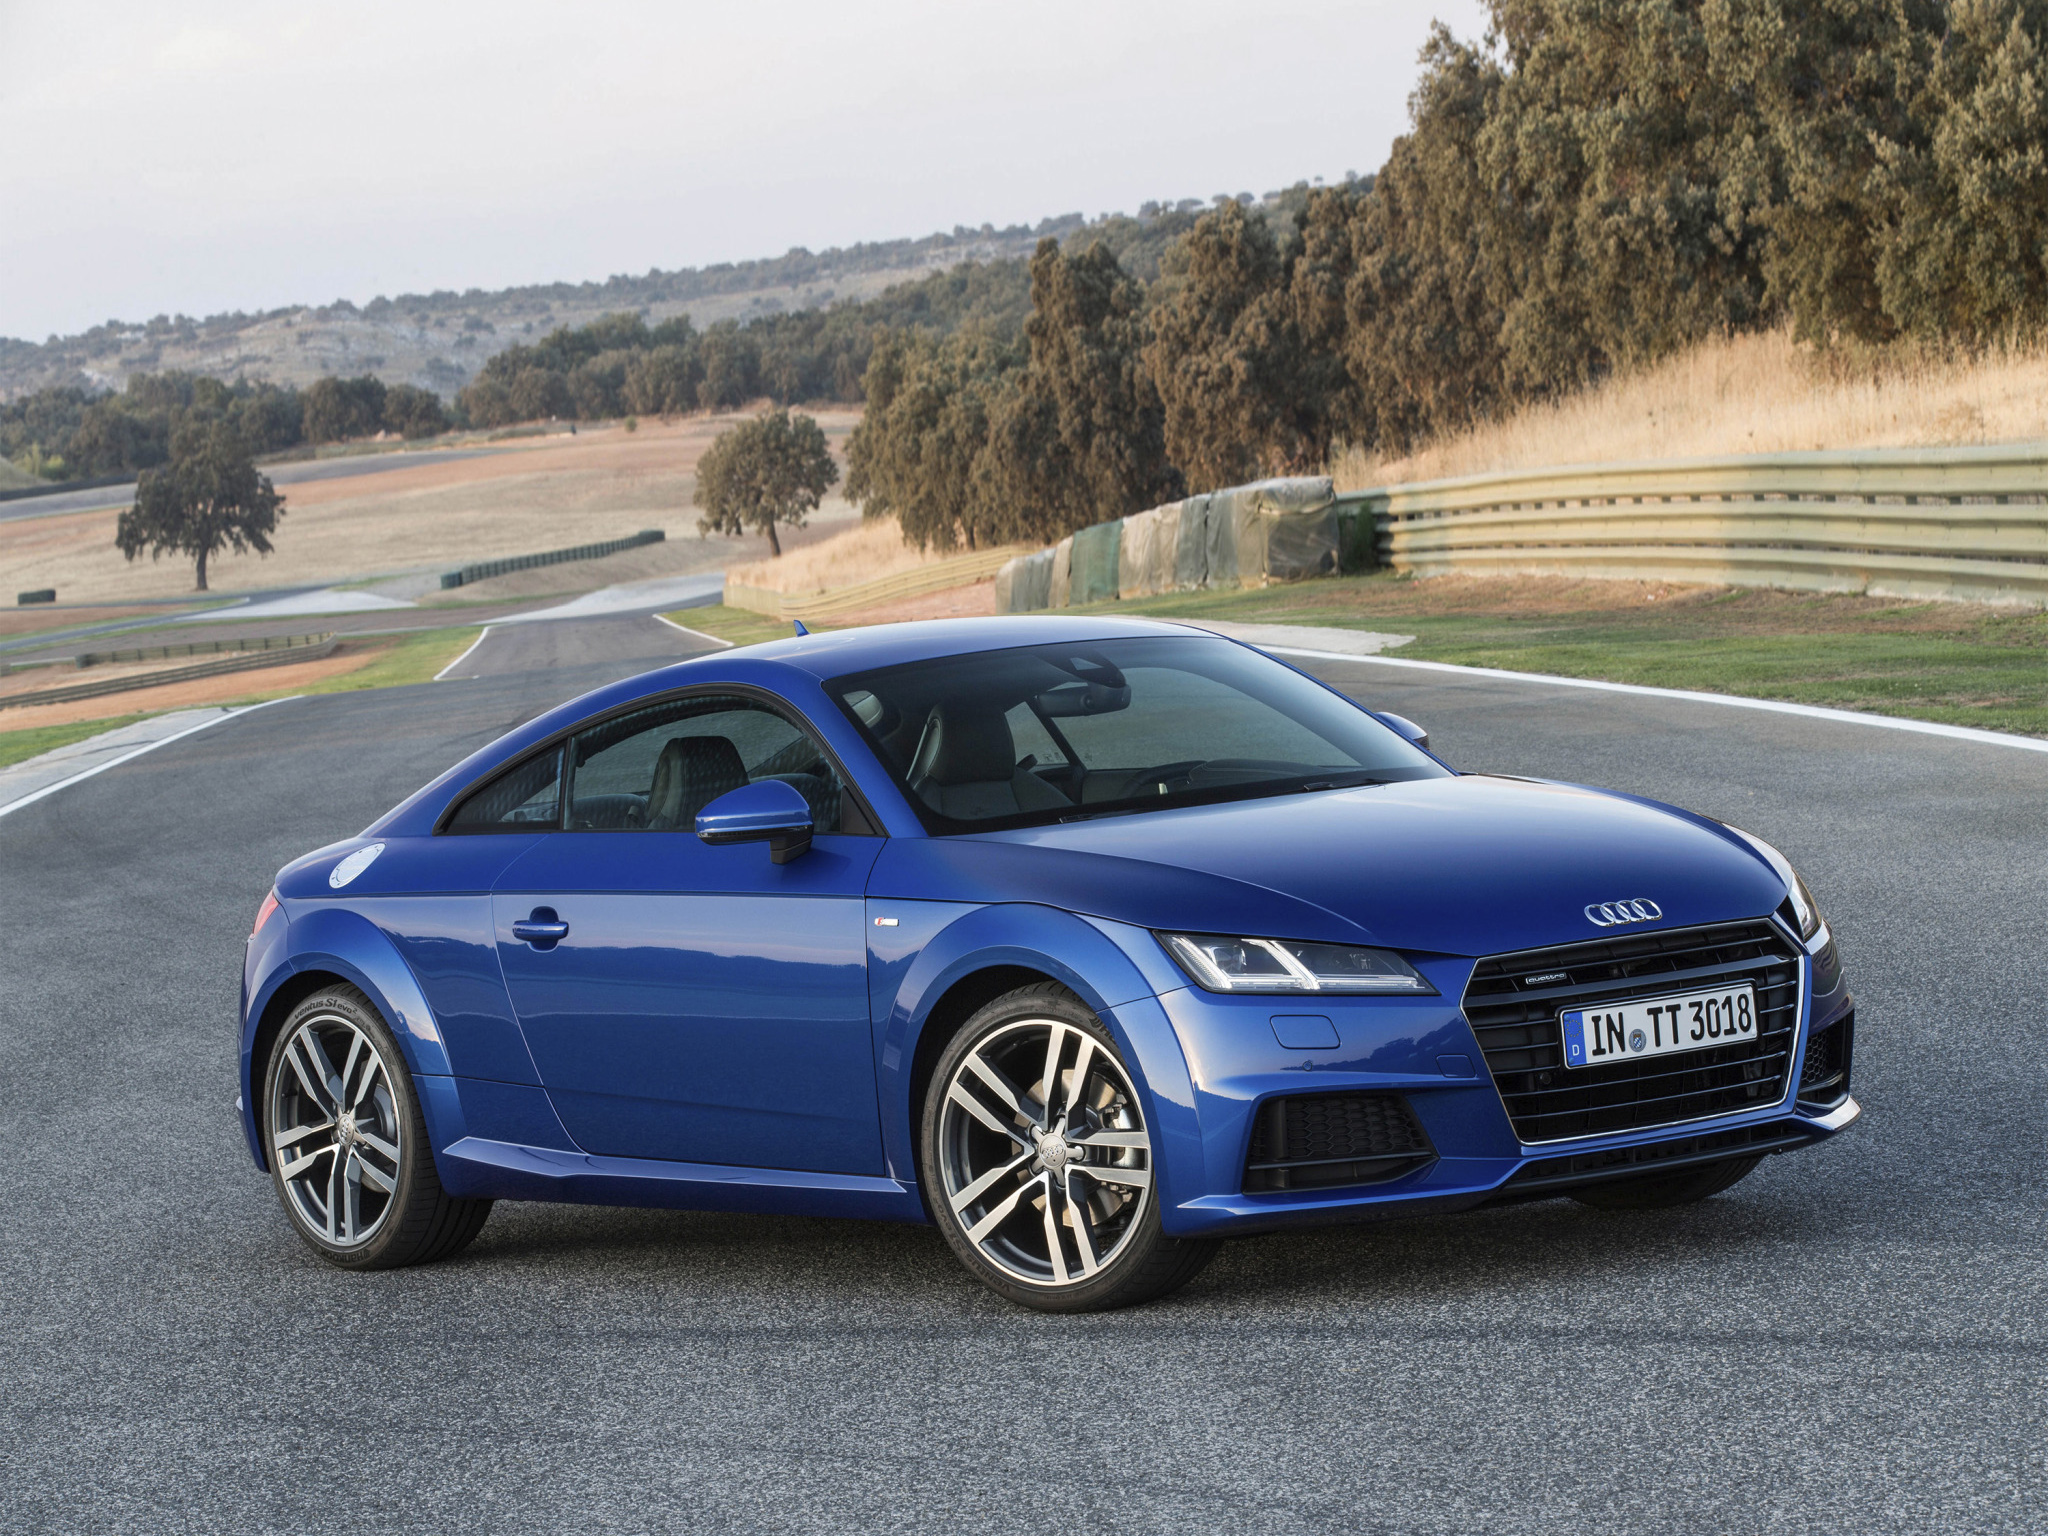 New Audi Tt Amp Tts Coupe Photos Show Vegas Yellow And Tango